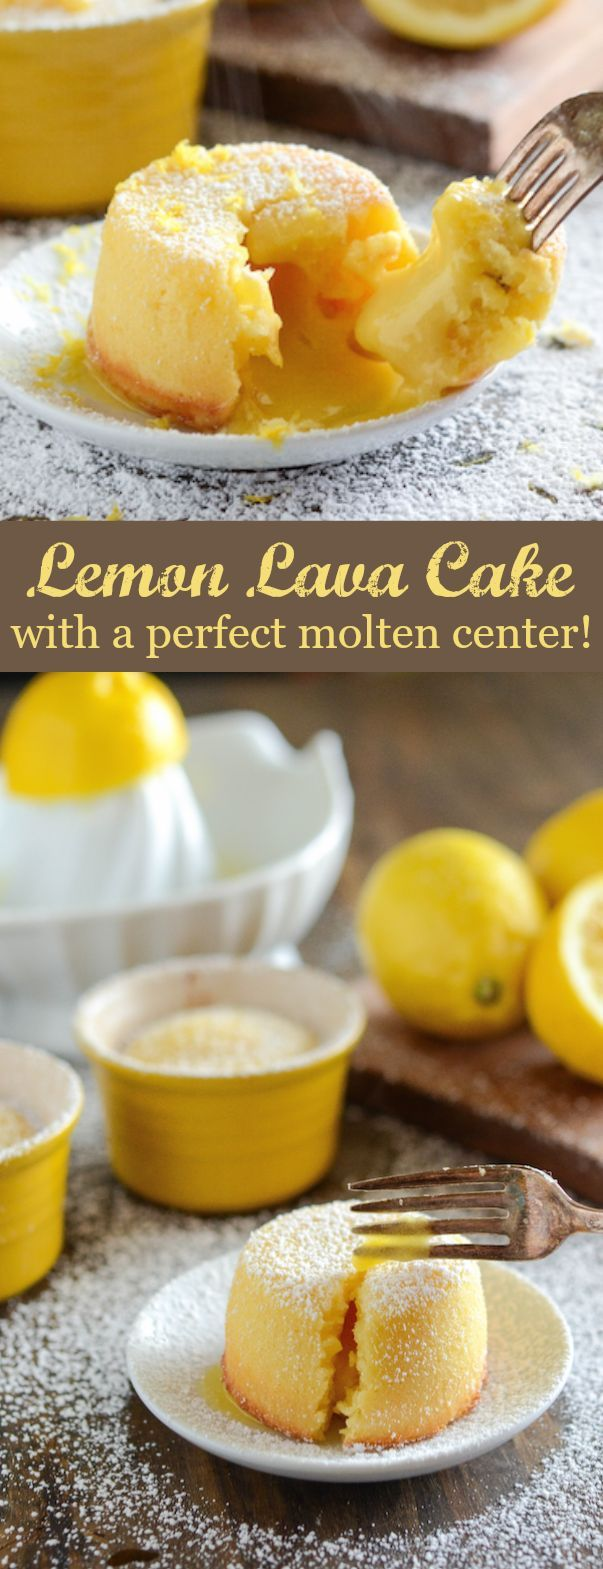 Lemon Lava Cake! It's sweet, zesty and full of bright flavors!